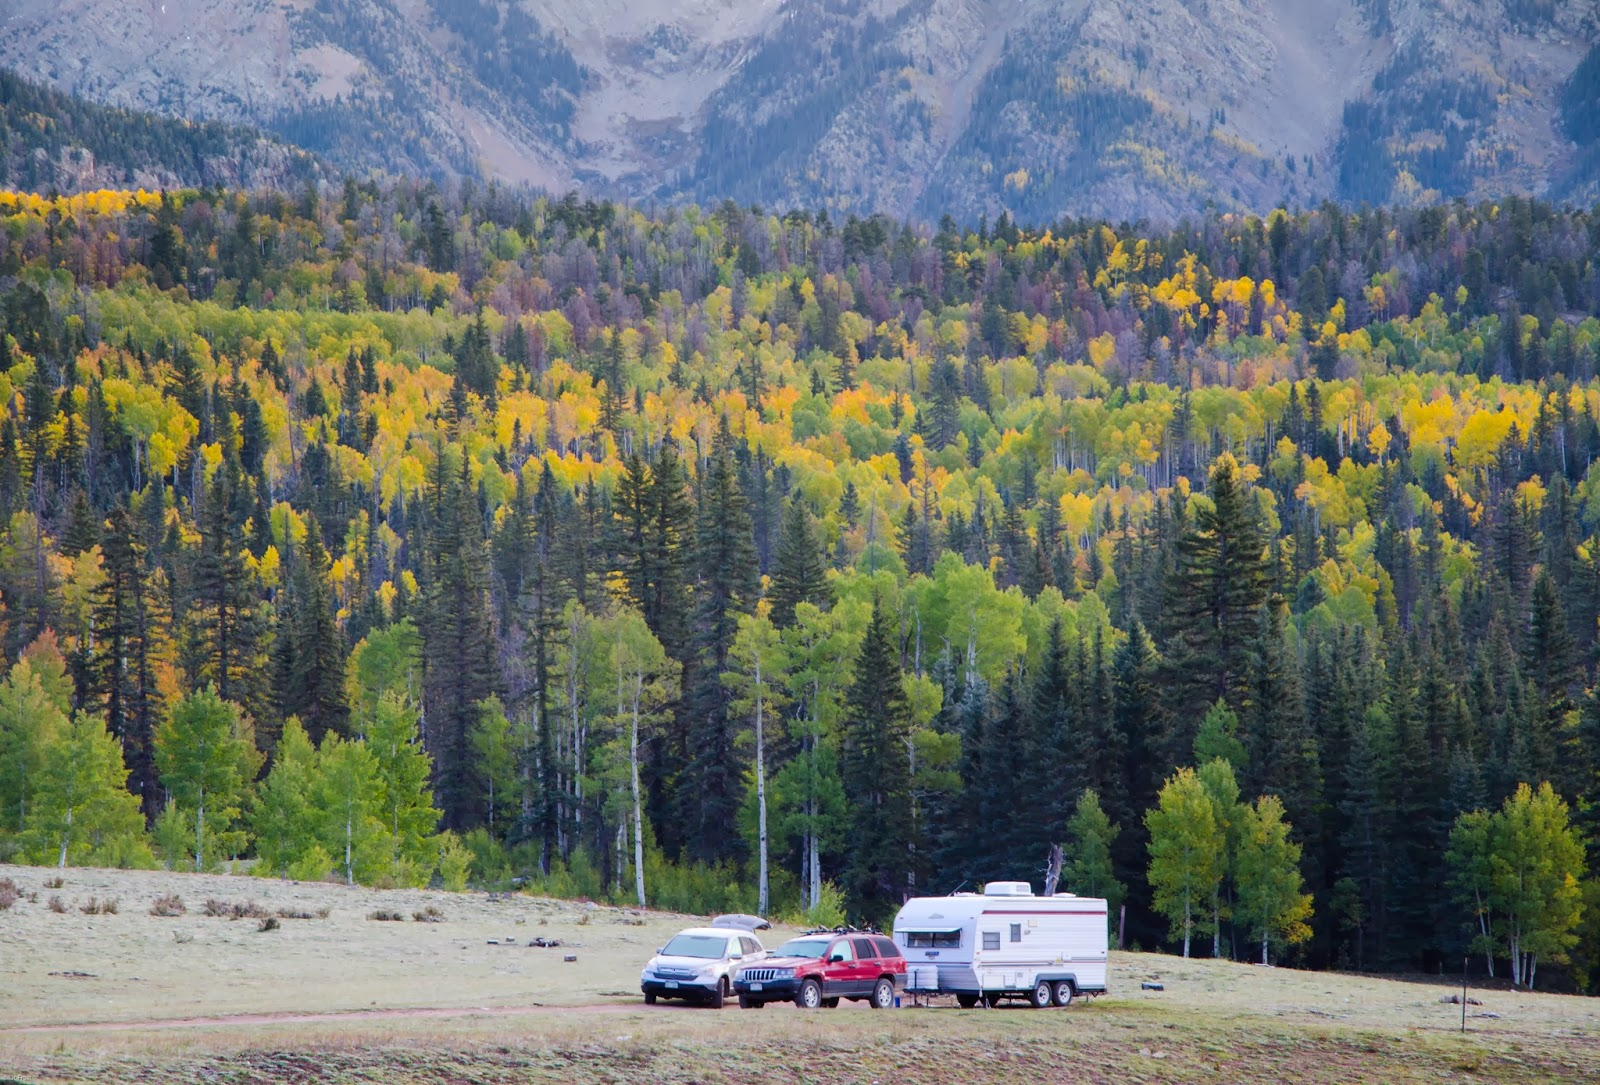 Fall color in the Mountains of Colorado, trees in full fall color and travel trailer camping